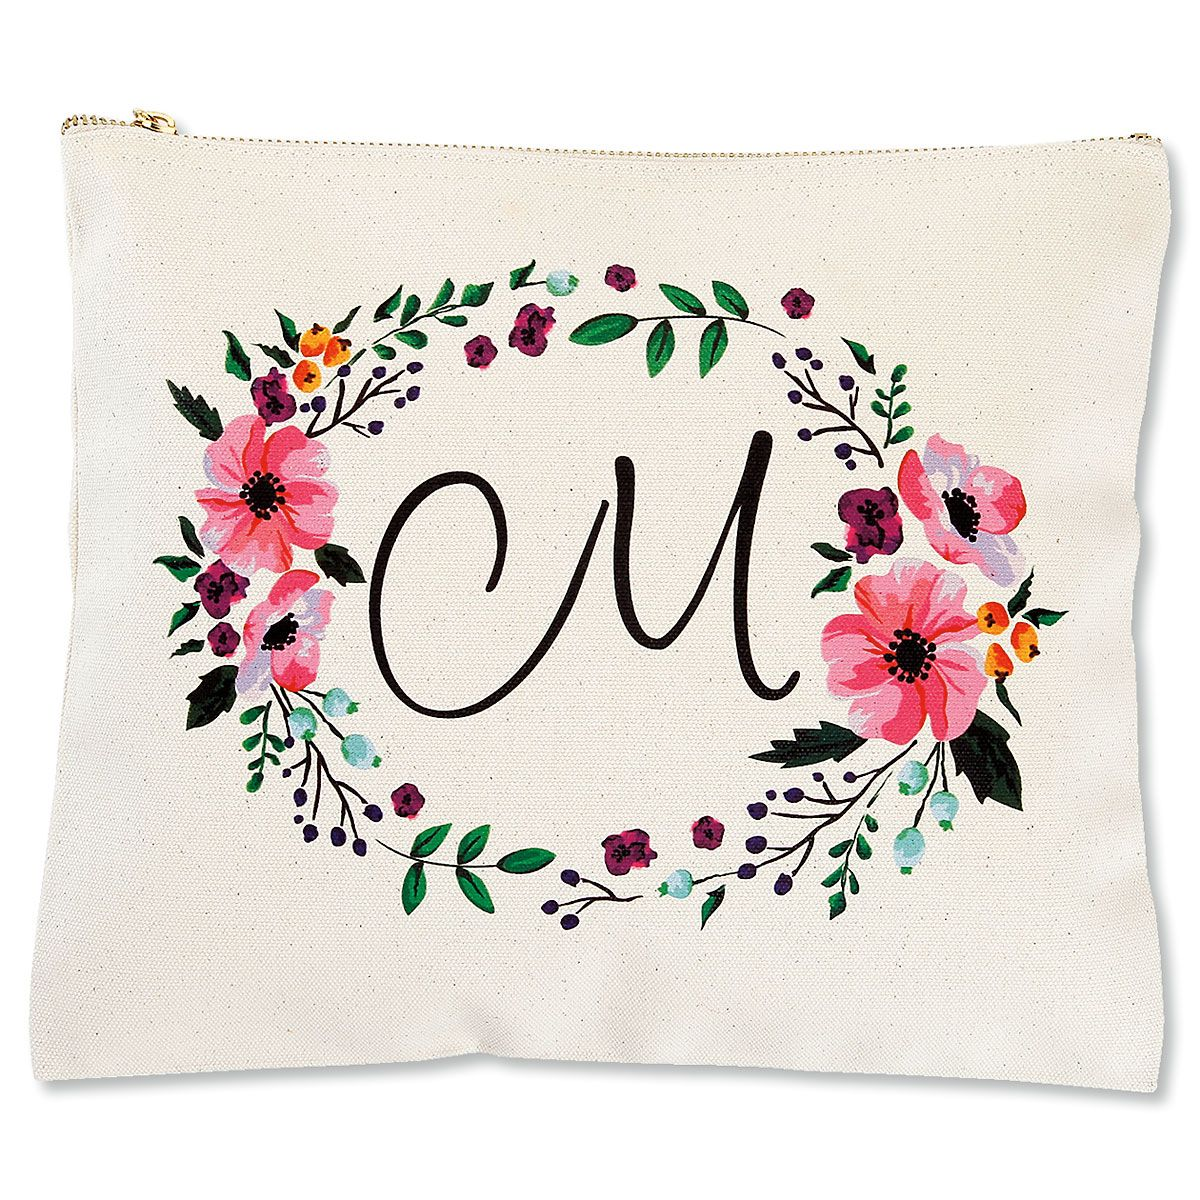 Personalized Initial in Wreath Zippered Canvas Pouch